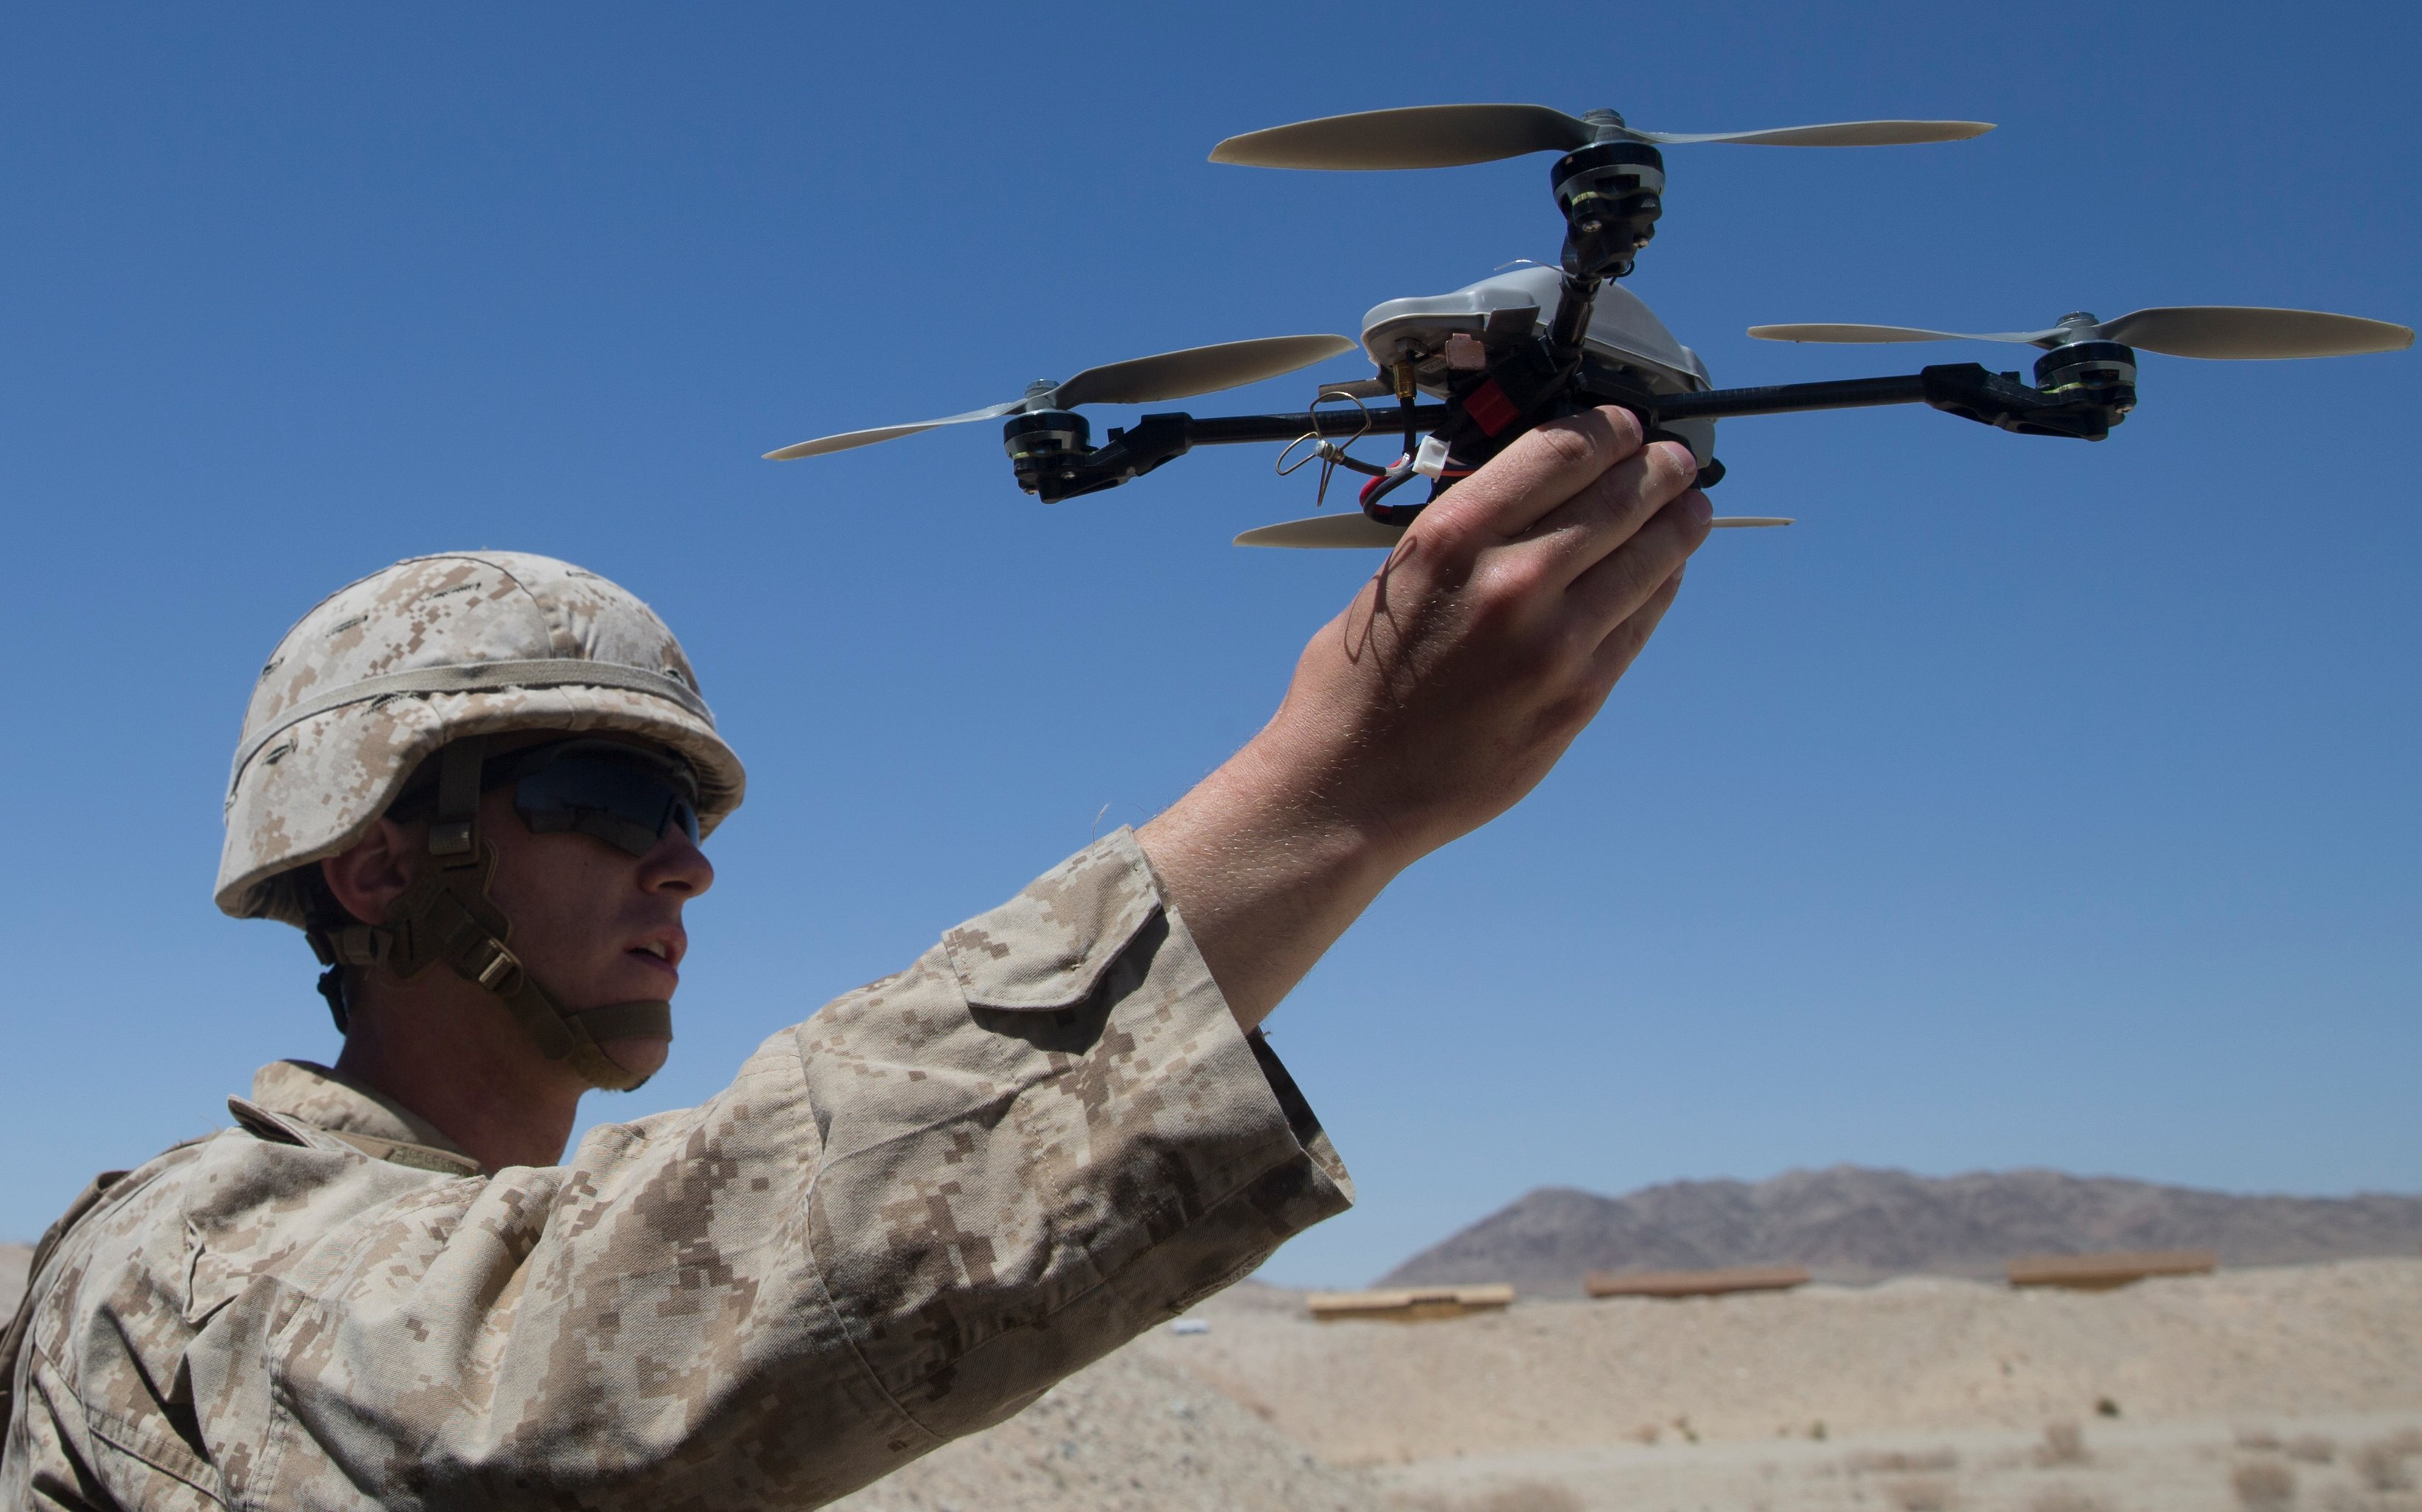 Pentagon Grounds Marines' 'Eyes in the Sky' Drones Over